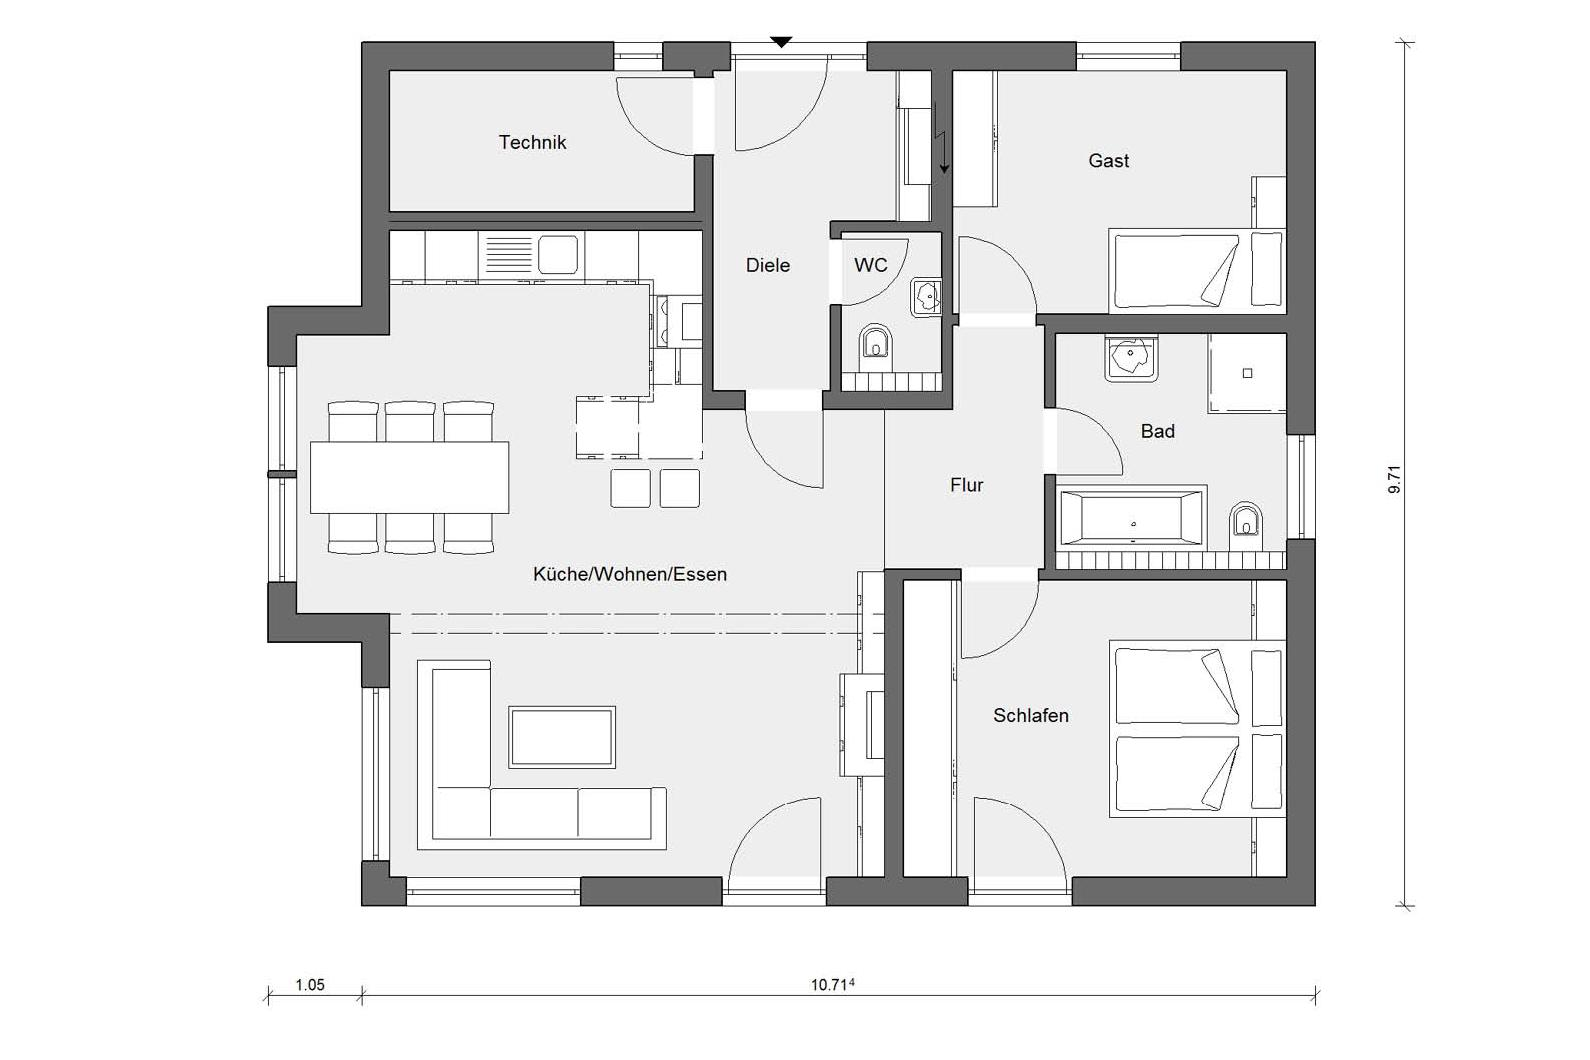 Ground floor plan E 10-089.1 Bungalow with bay window